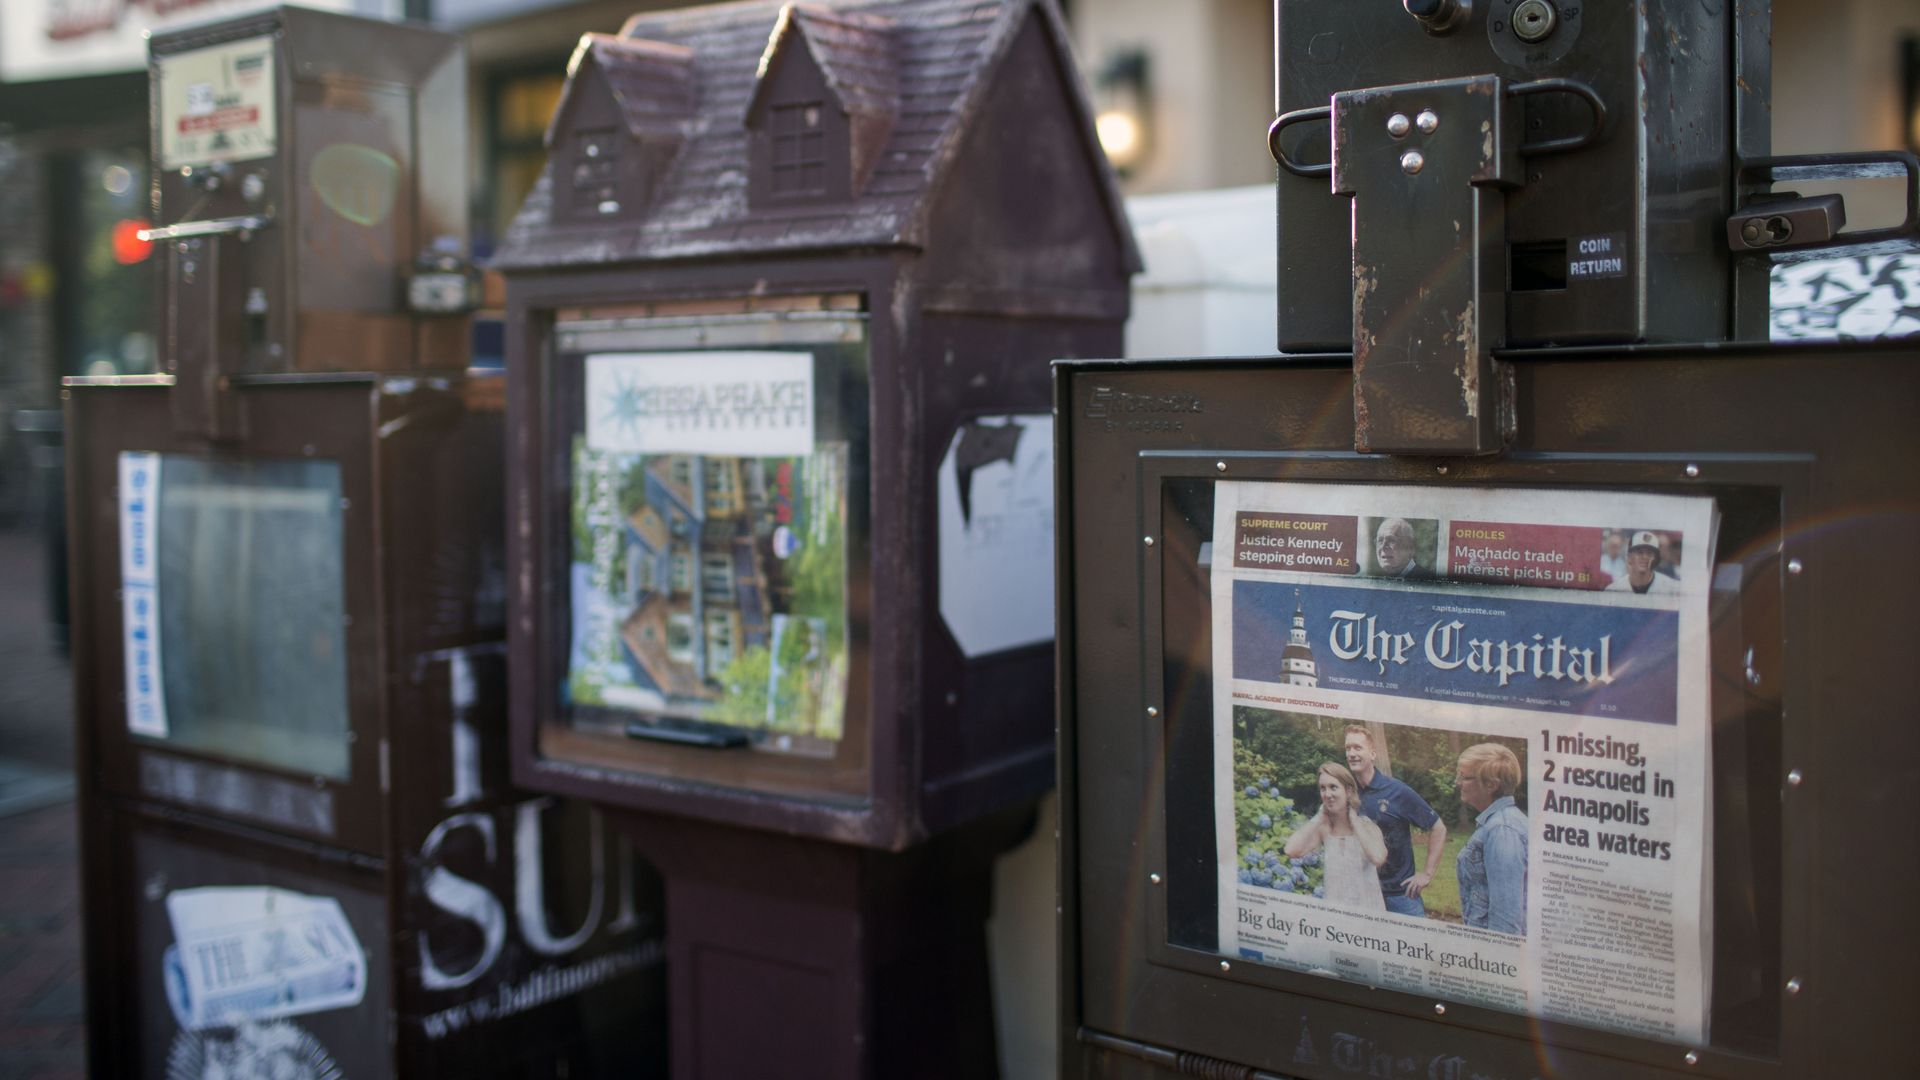 A newspaper stand selling the Capital Gazette.